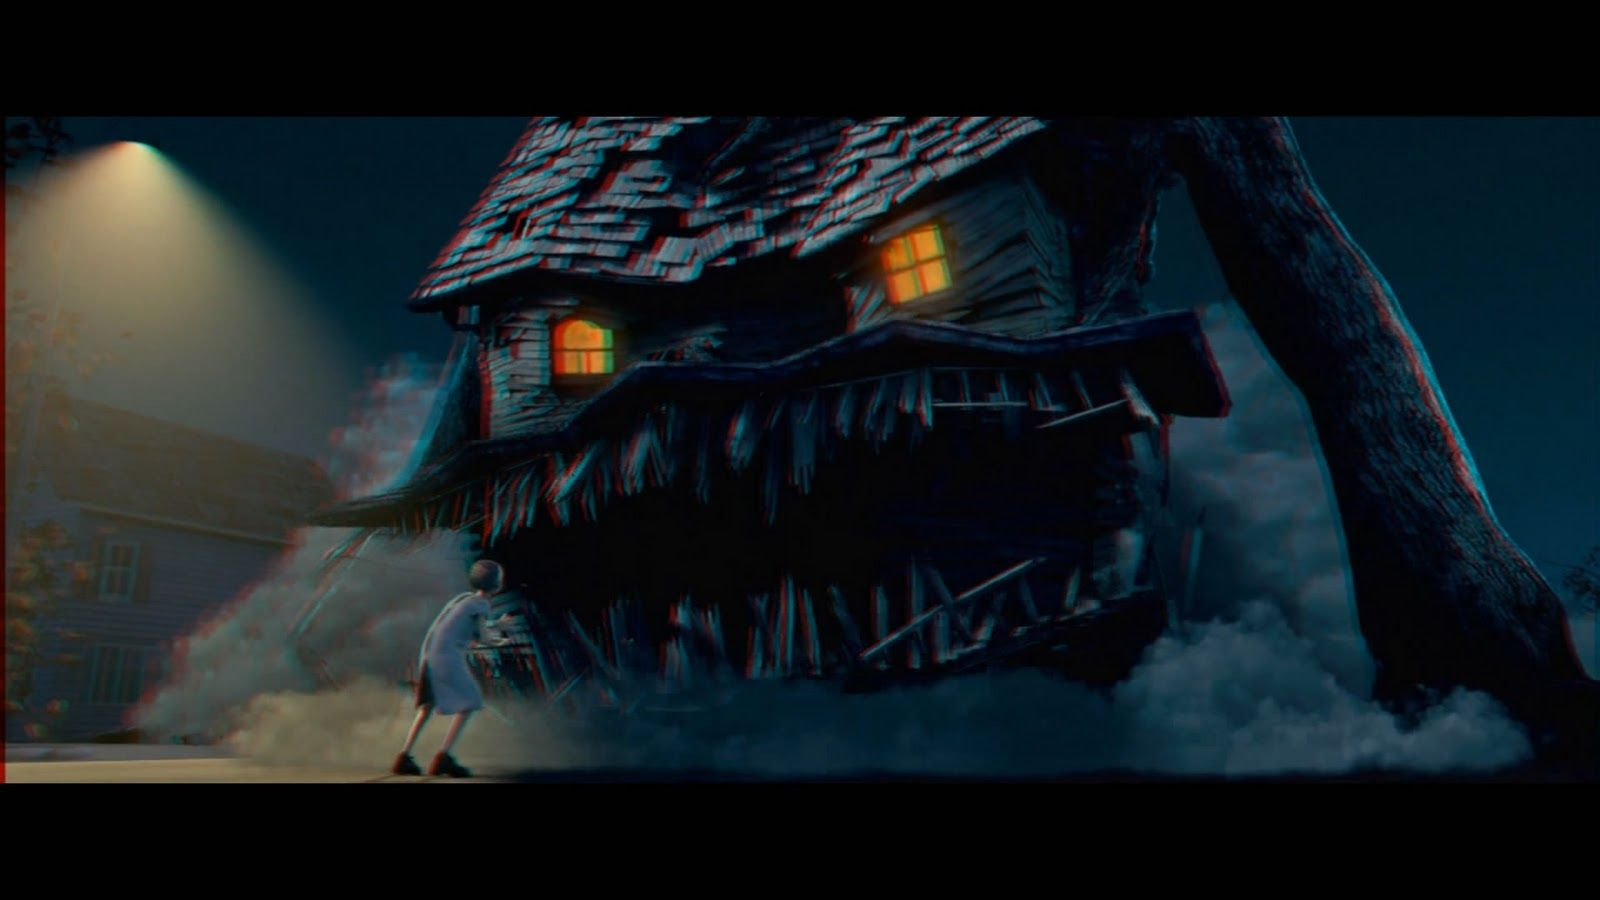 monster house movie - photo #17